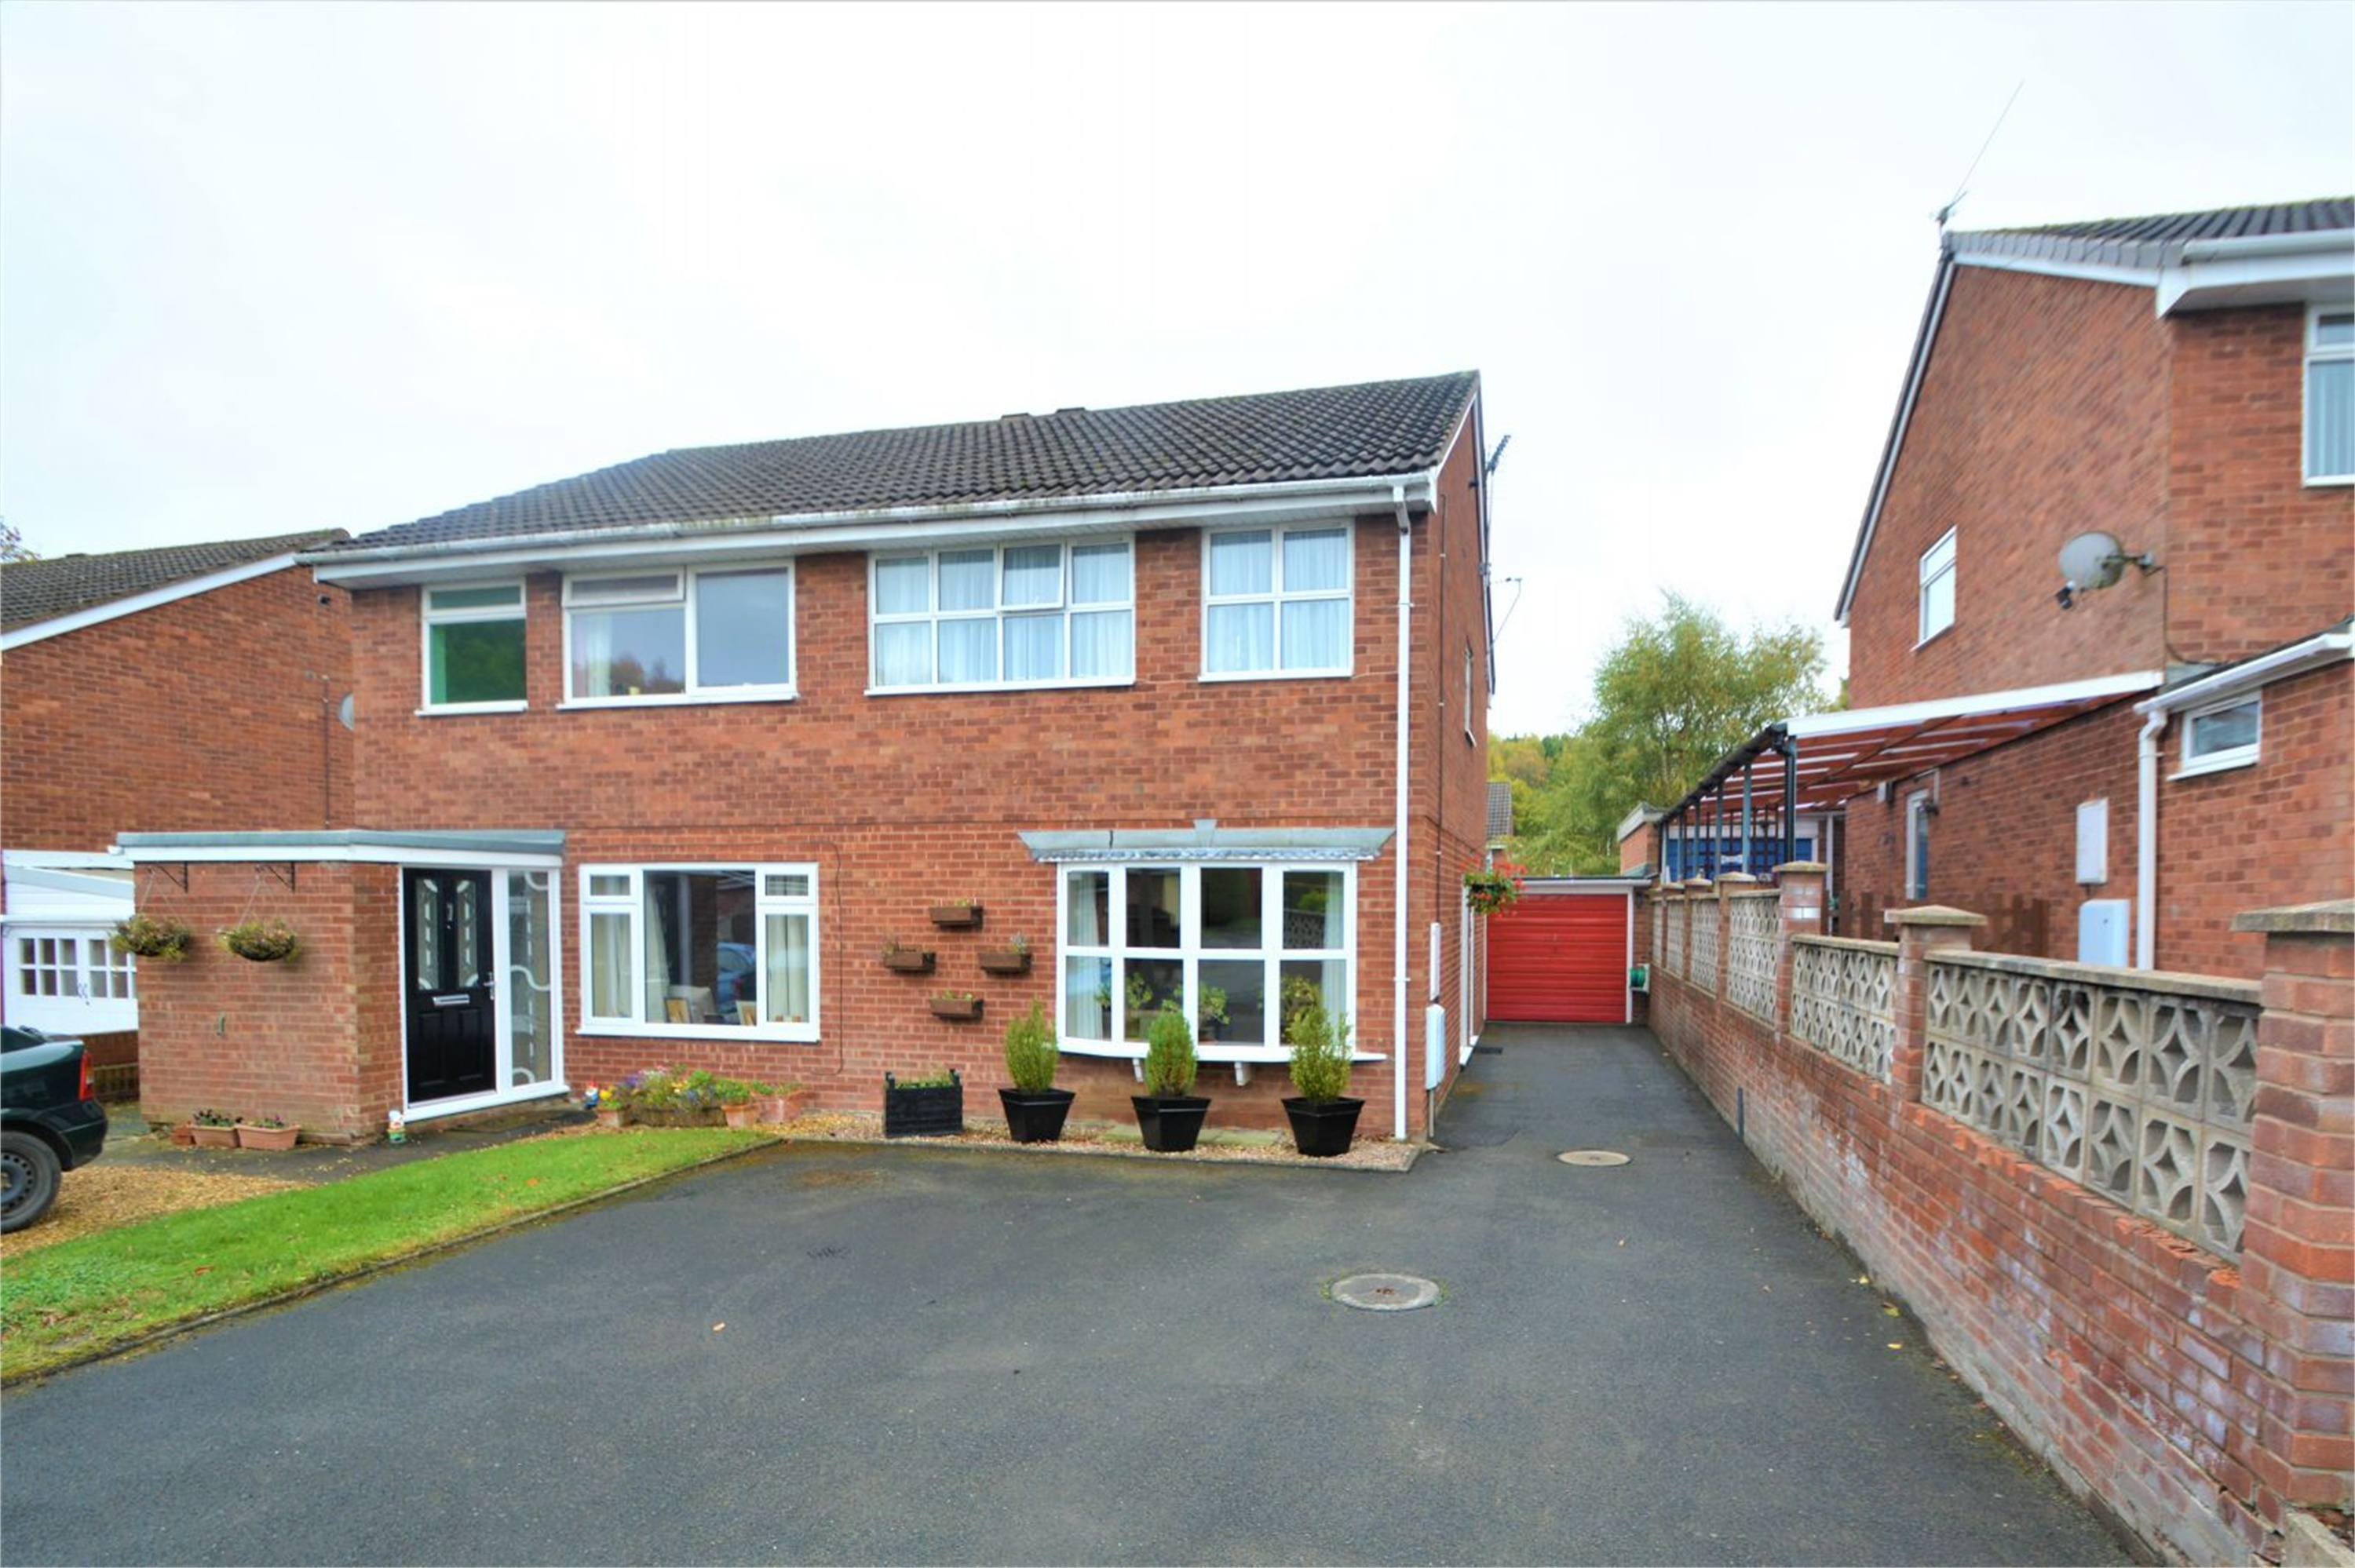 3 Bedrooms Semi Detached House for sale in 2 Chantry Close, Broseley, Shropshire, TF12